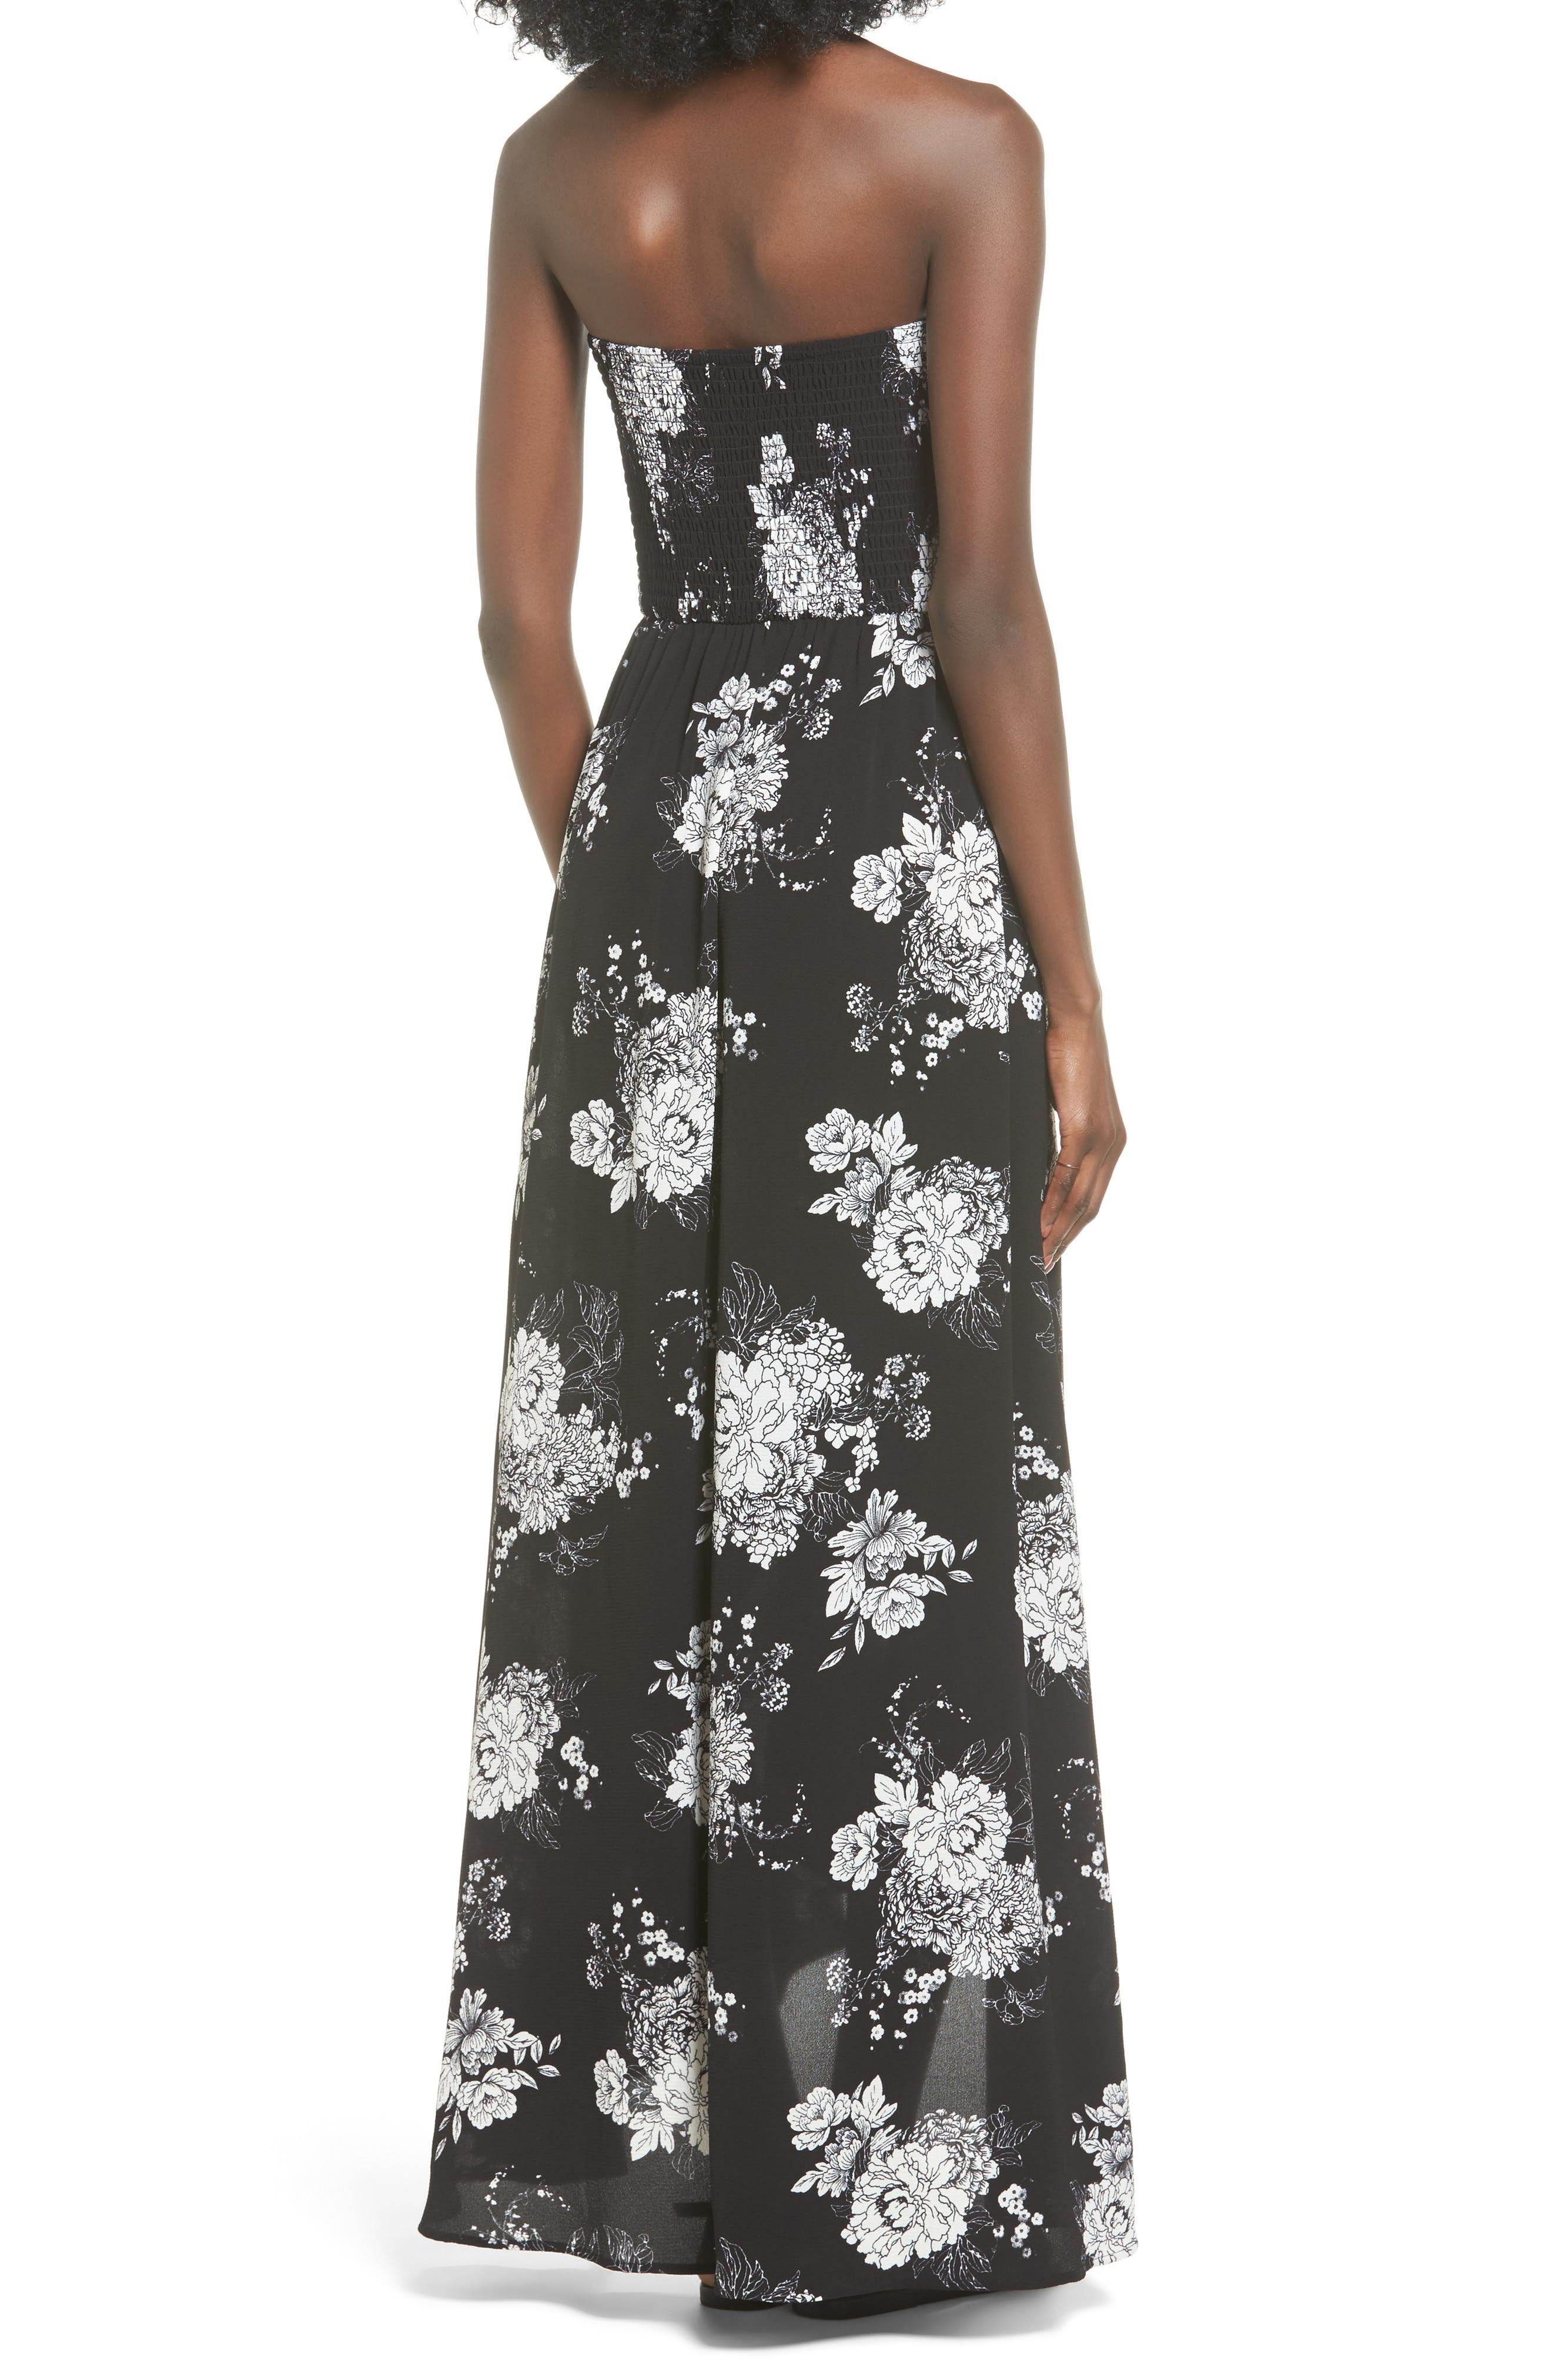 Smocked Strapless Maxi Dress,                             Alternate thumbnail 2, color,                             Black/ Ivory Floral